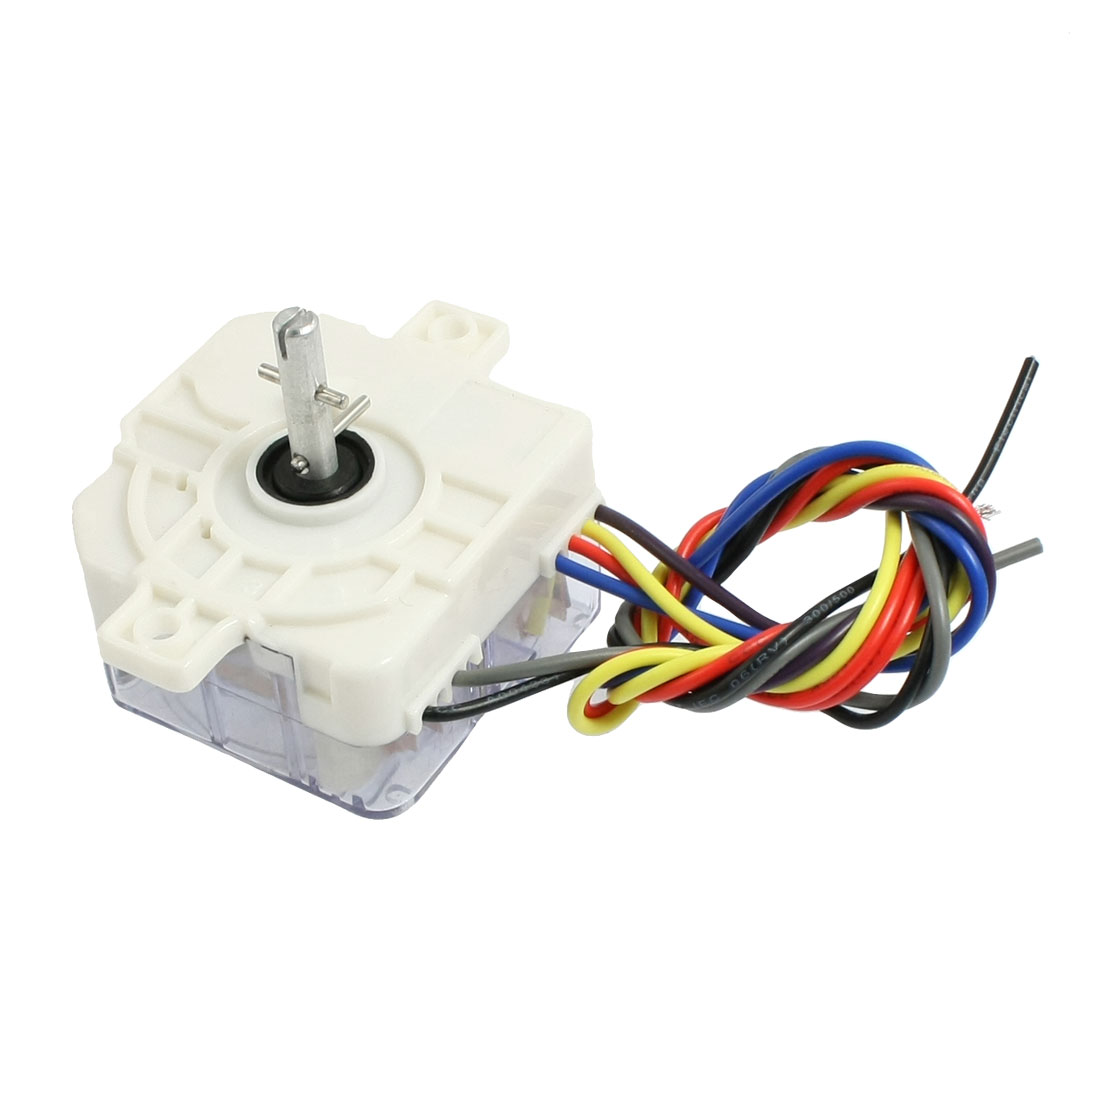 AC 250V 3A 6 Wires Washer Control Timer for Washing Machine